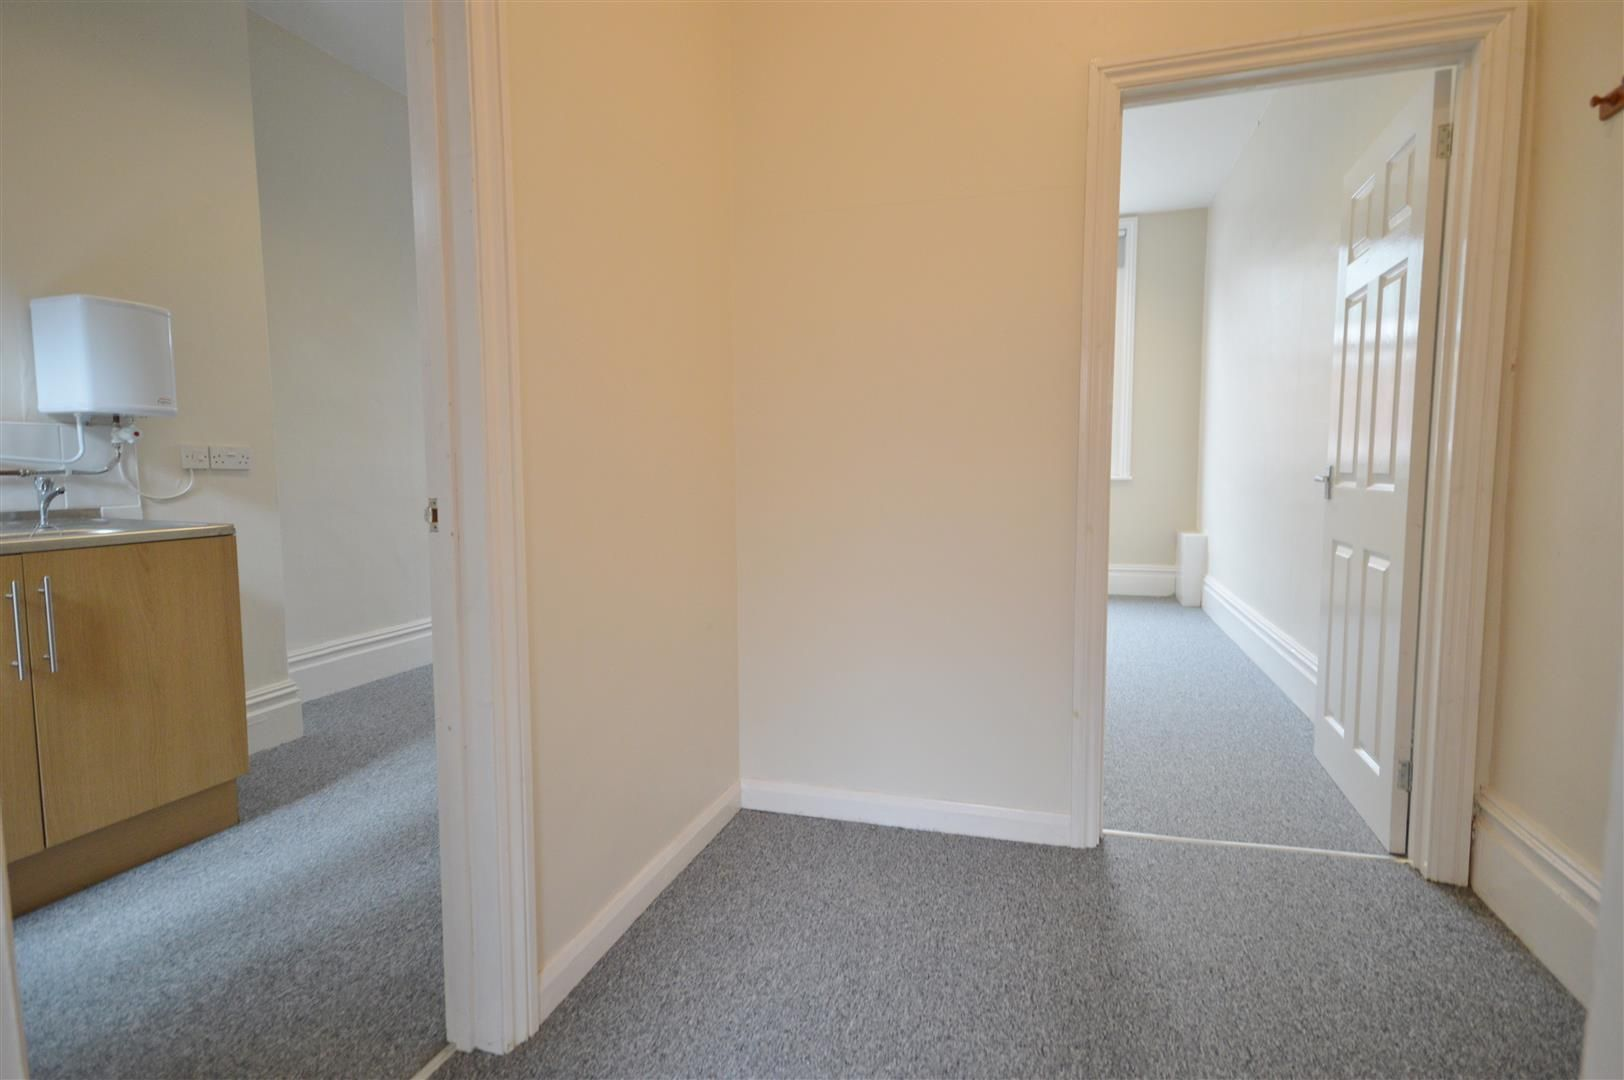 for sale in Leominster  - Property Image 5